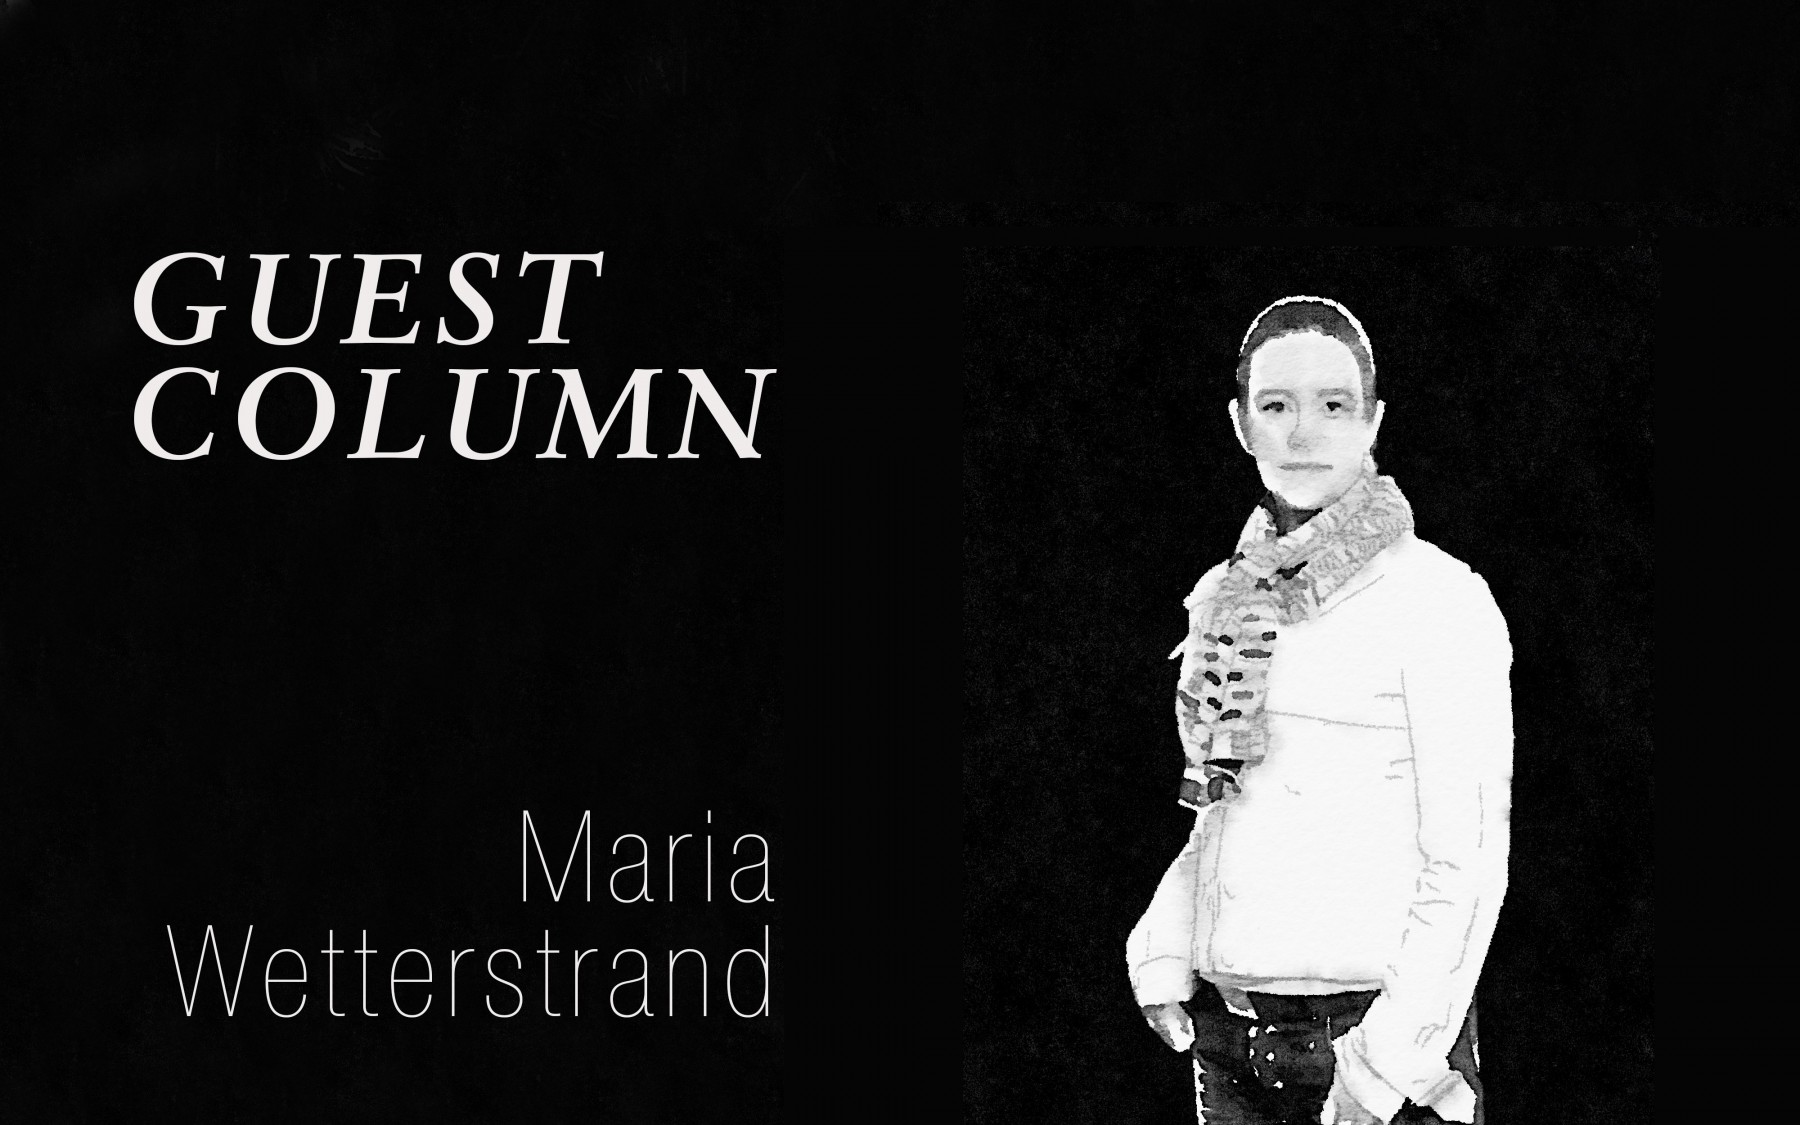 Guest column with Maria Wetterstrand